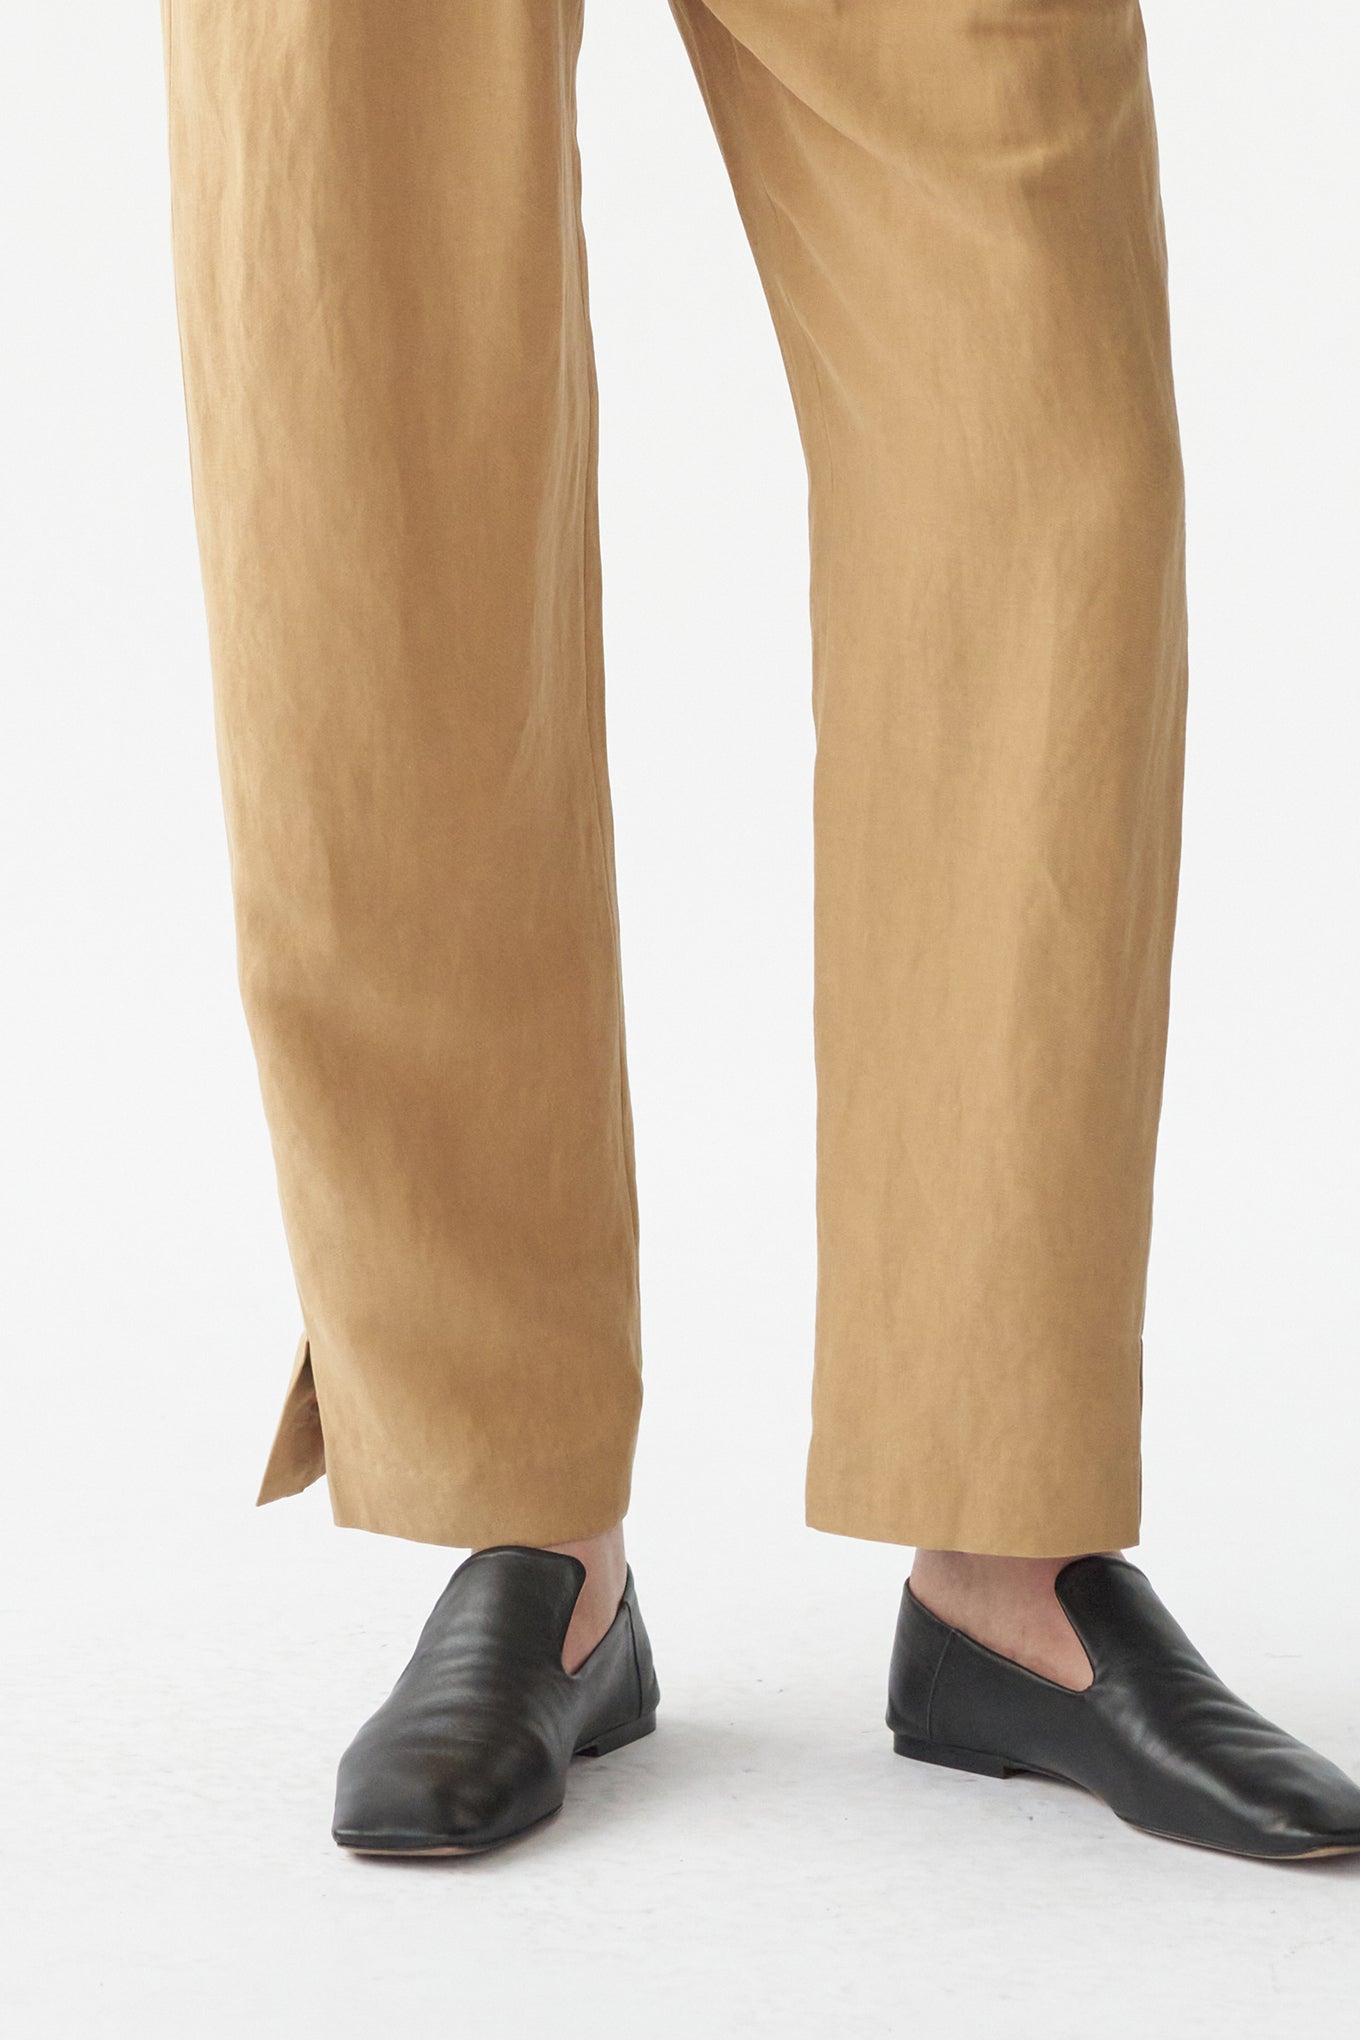 HARRY PANTS - DESERT SAND - SILK/LINEN